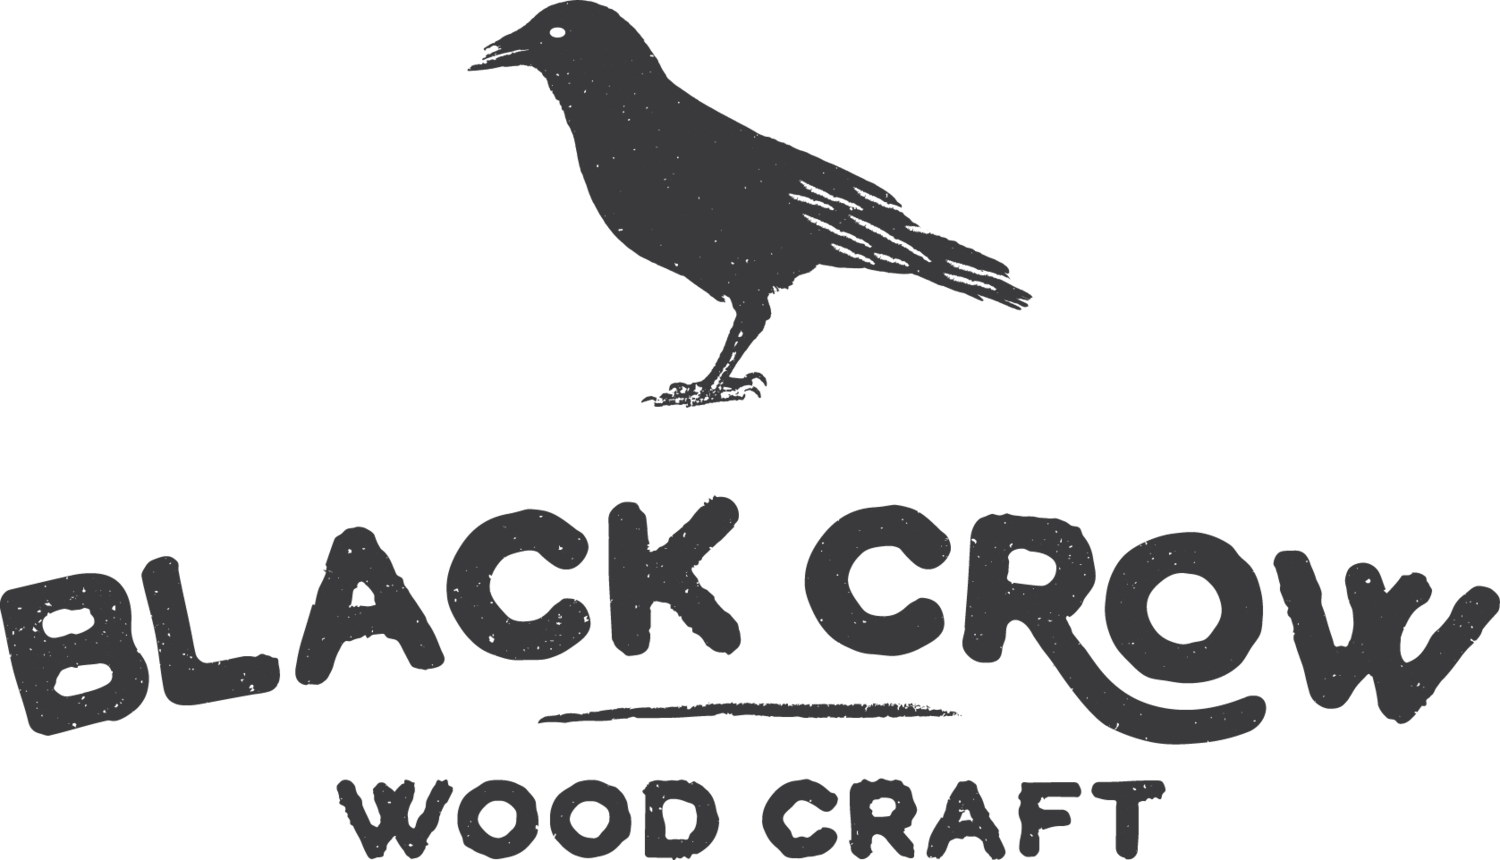 Black Crow Wood Craft LLC